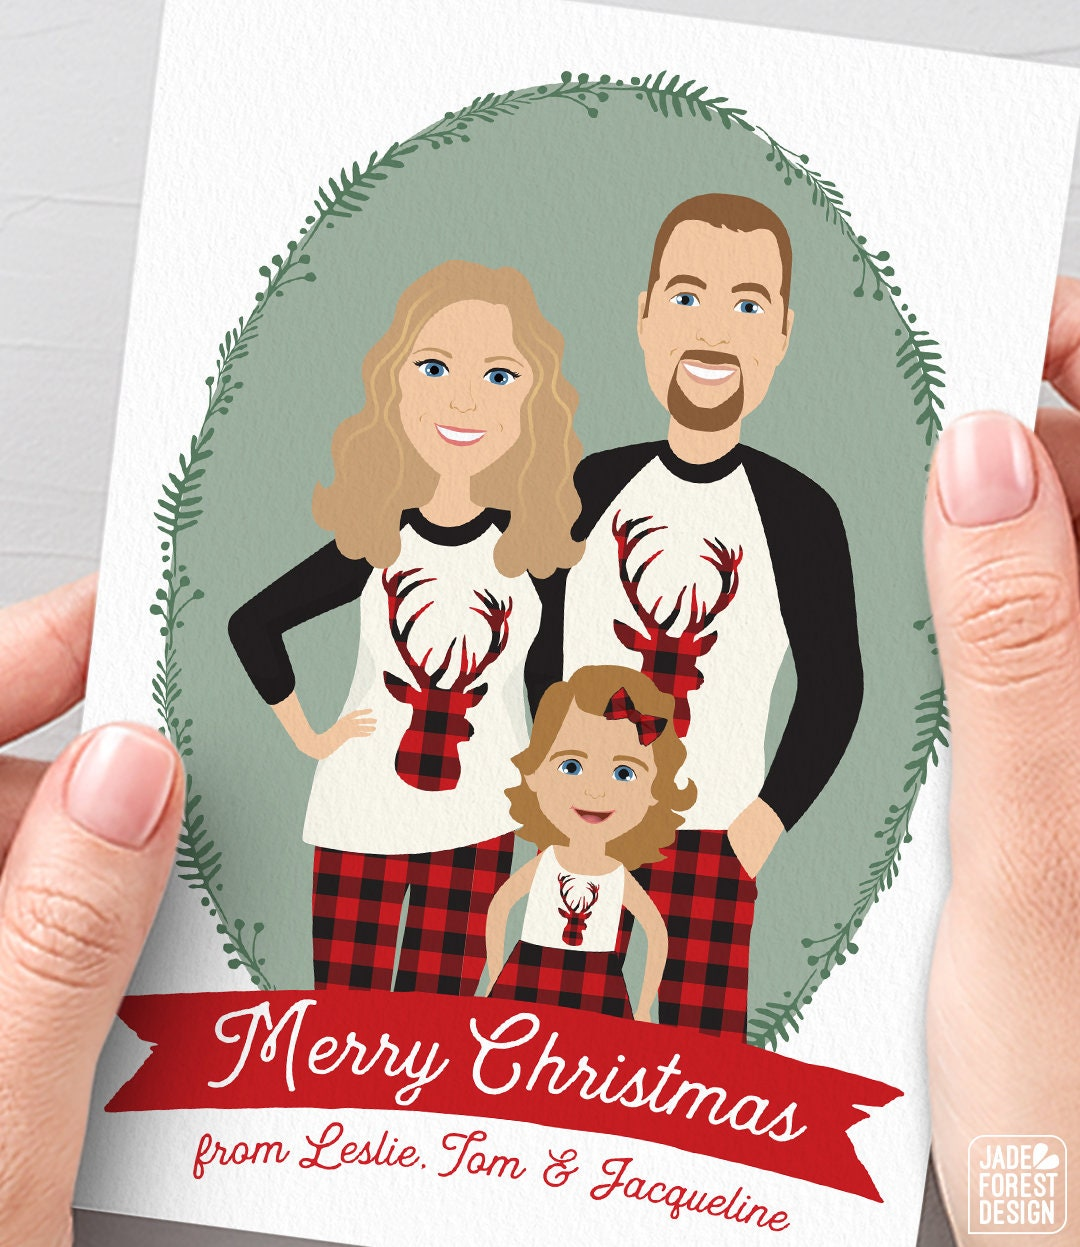 family christmas card unique christmas cards with custom family portrait in matching christmas pajamas - Unique Photo Christmas Cards